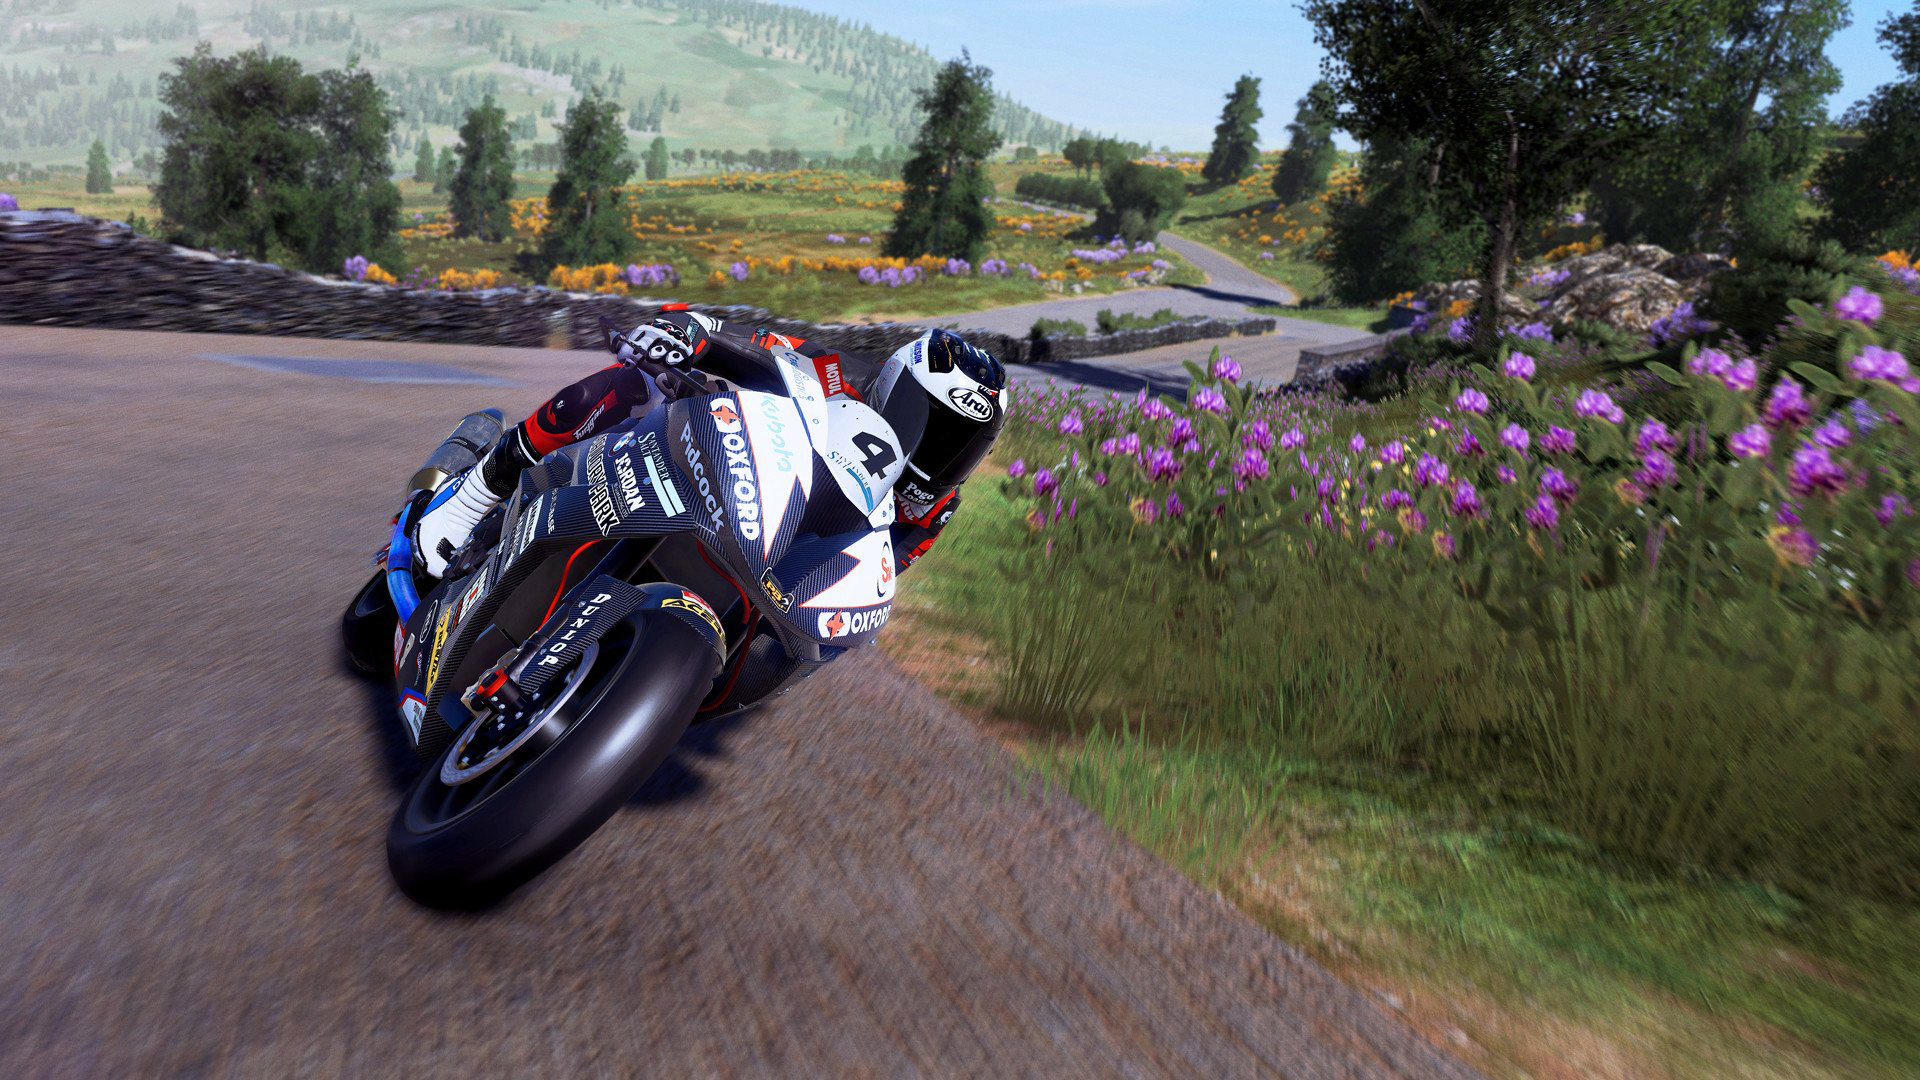 Free TT Isle of Man: Ride on the Edge 2 Wallpaper in 1920x1080